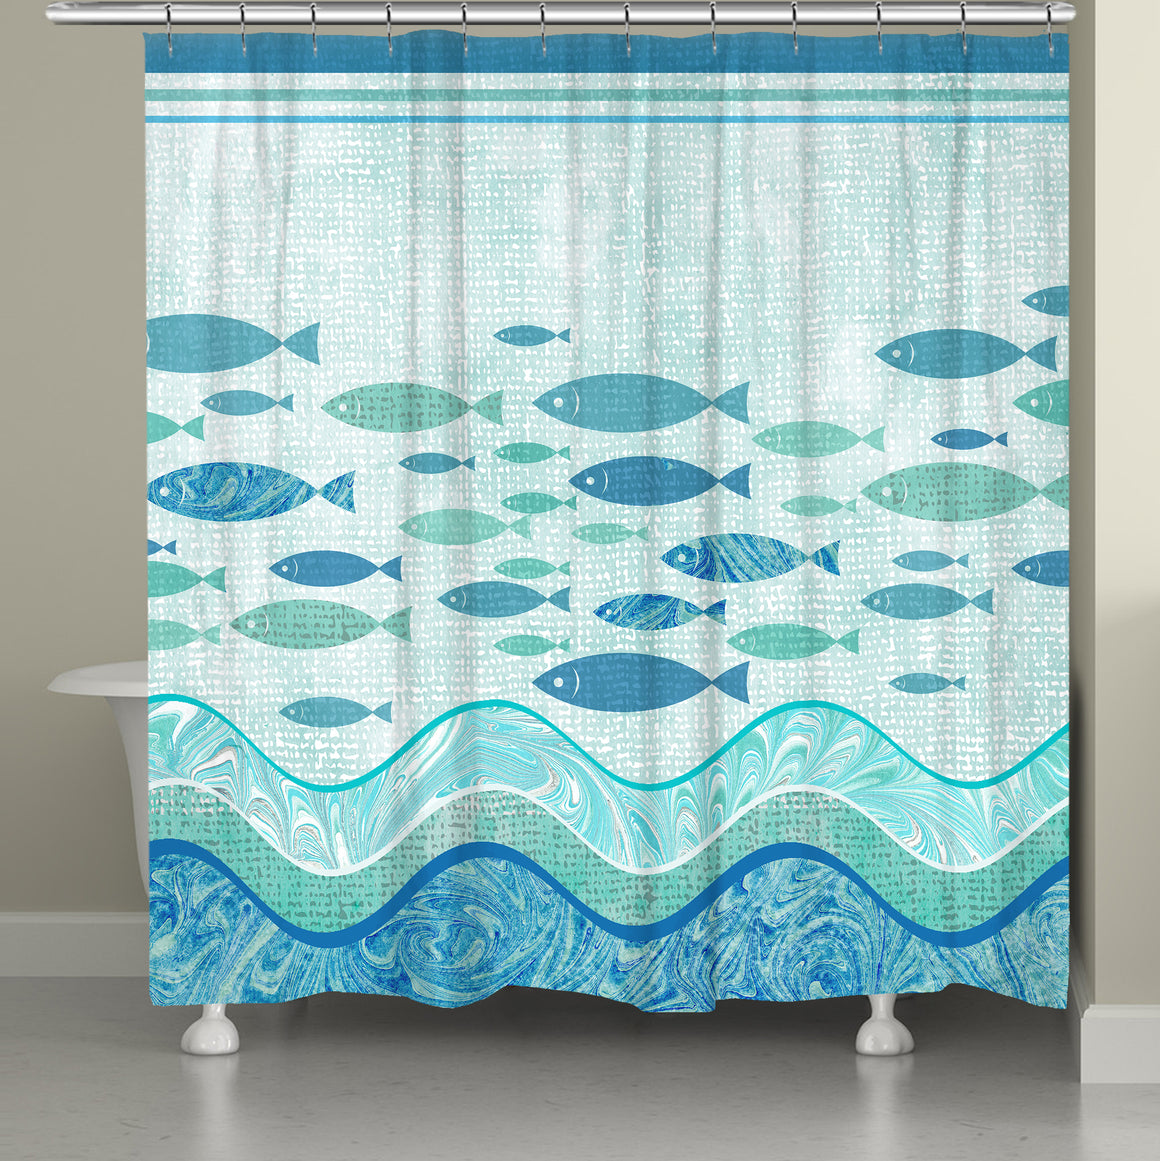 Swimming School Shower Curtain